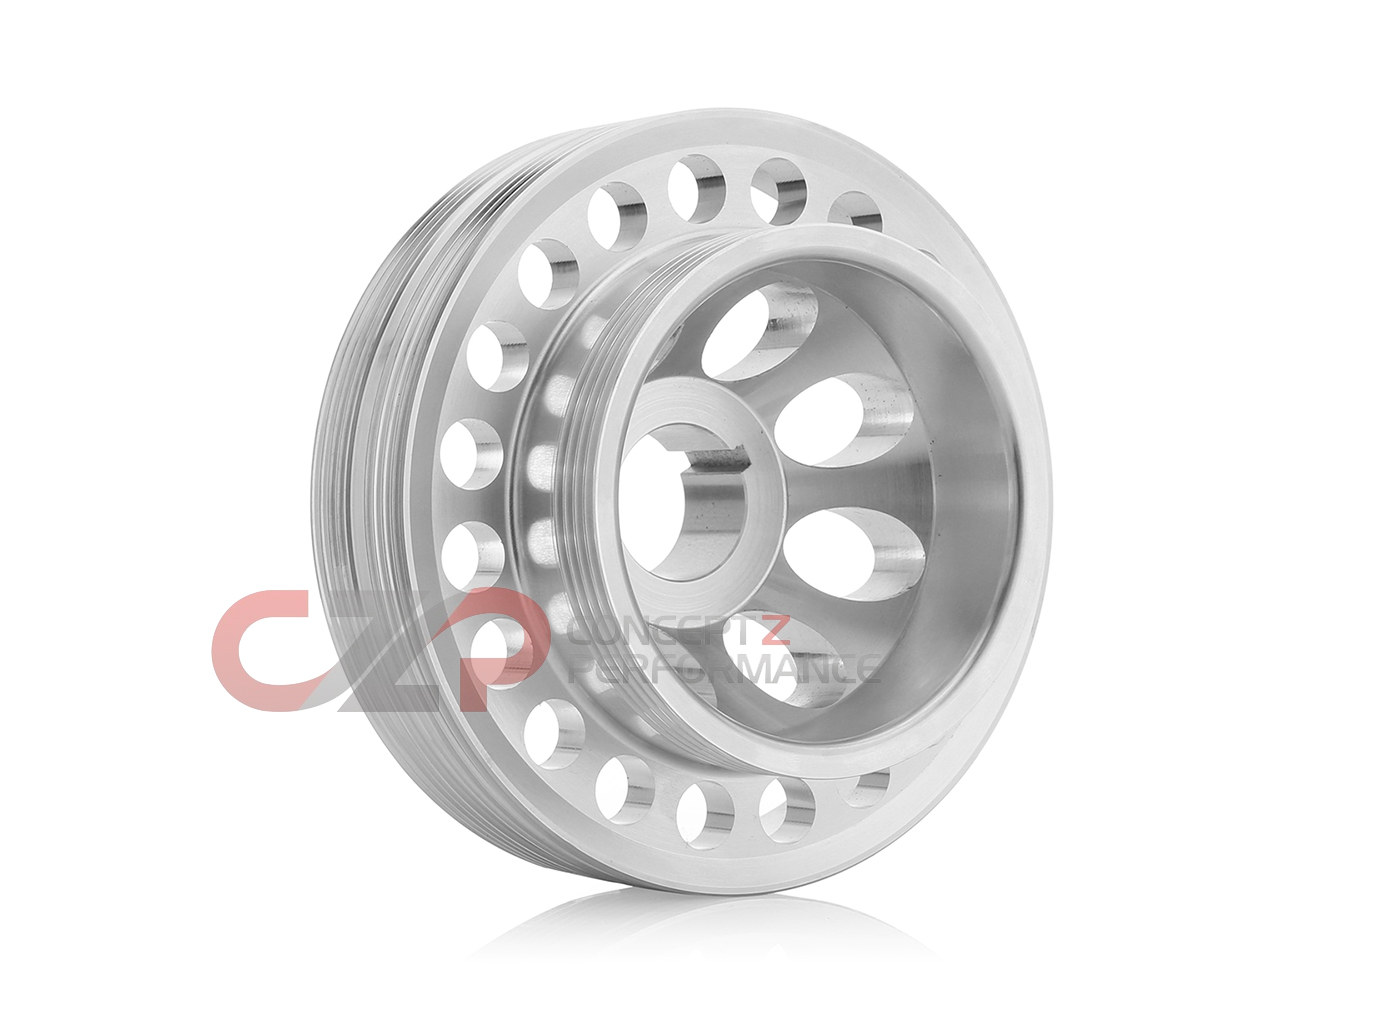 Unorthodox Racing CS1061 Lightweight Crank Pulley, Stock Size - Nissan 300ZX 90-96 Z32